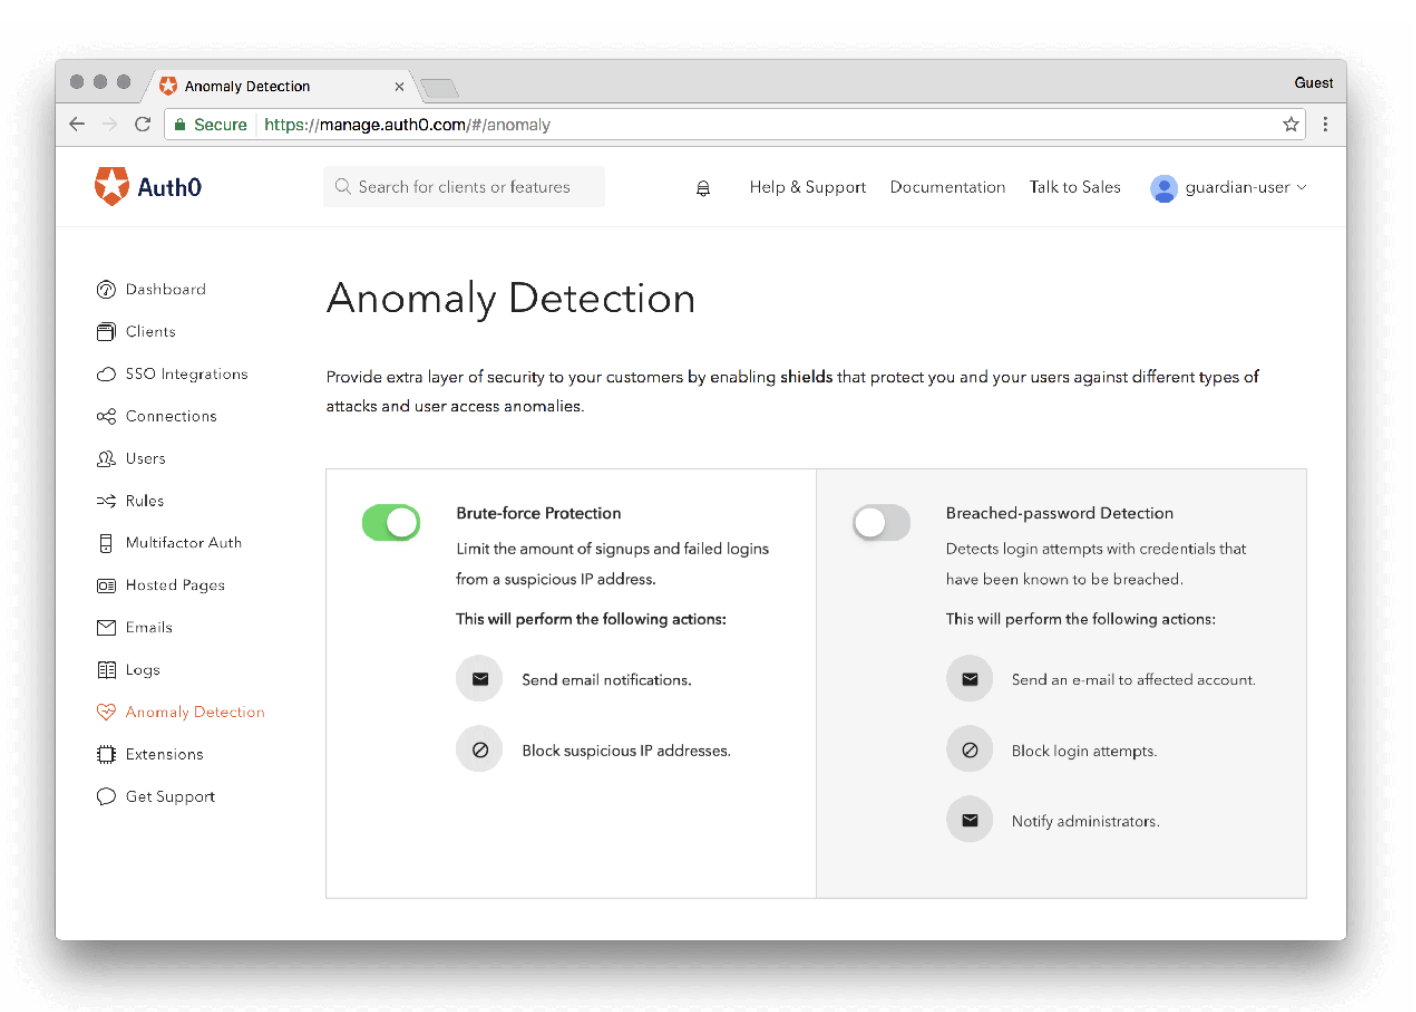 Auth0 Anomaly Detection view in the dashboard